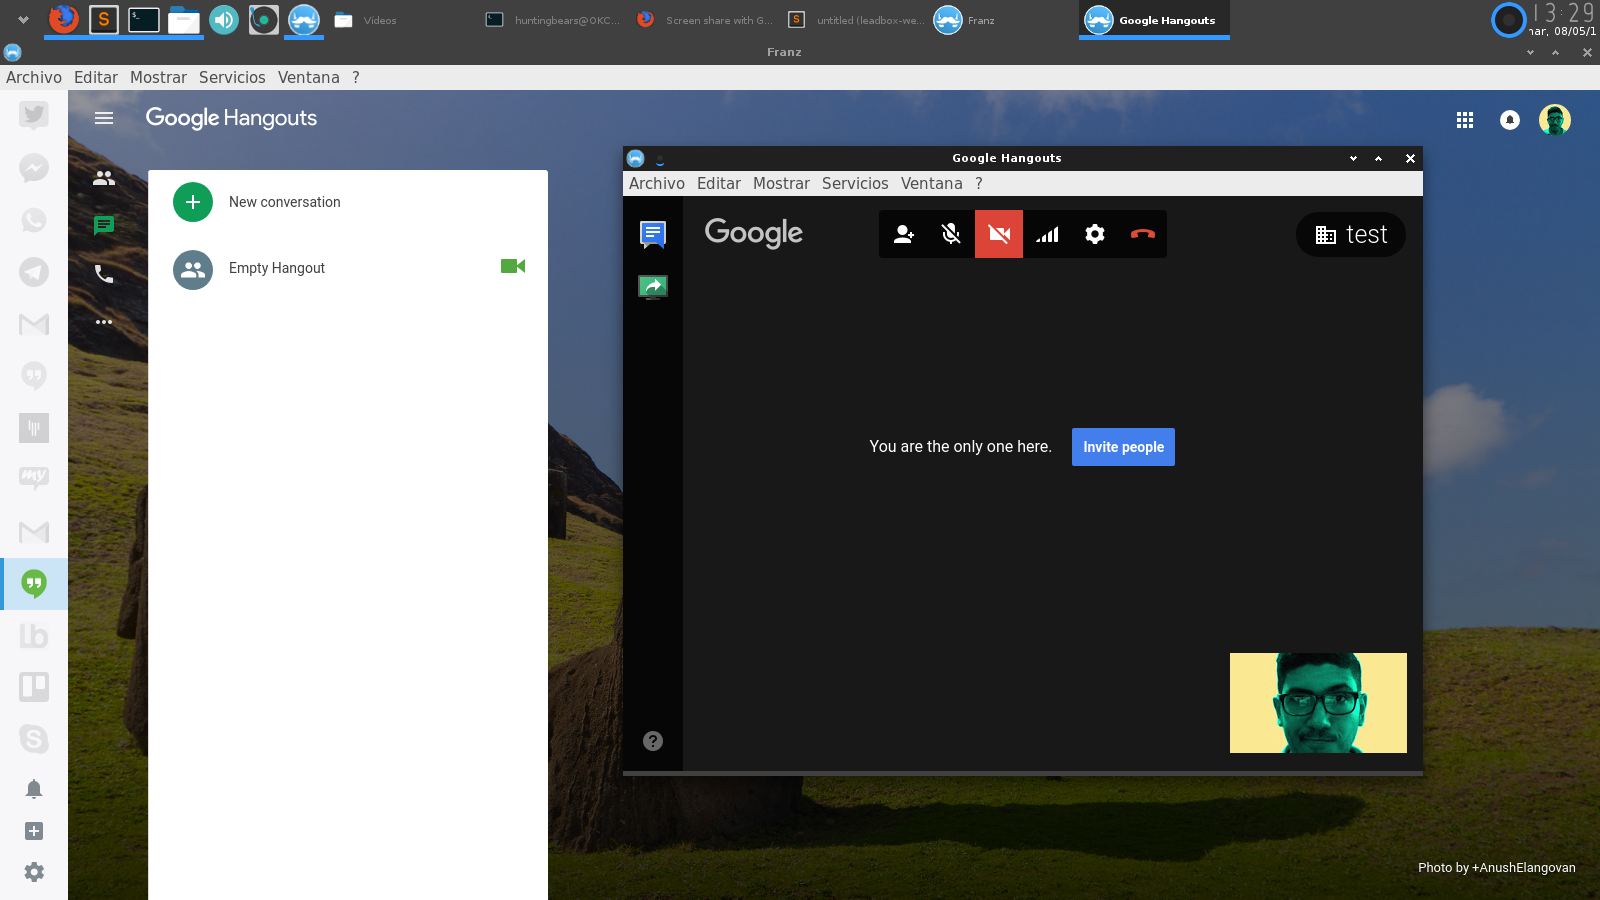 Screen share on Google Hangouts doesn't work · Issue #955